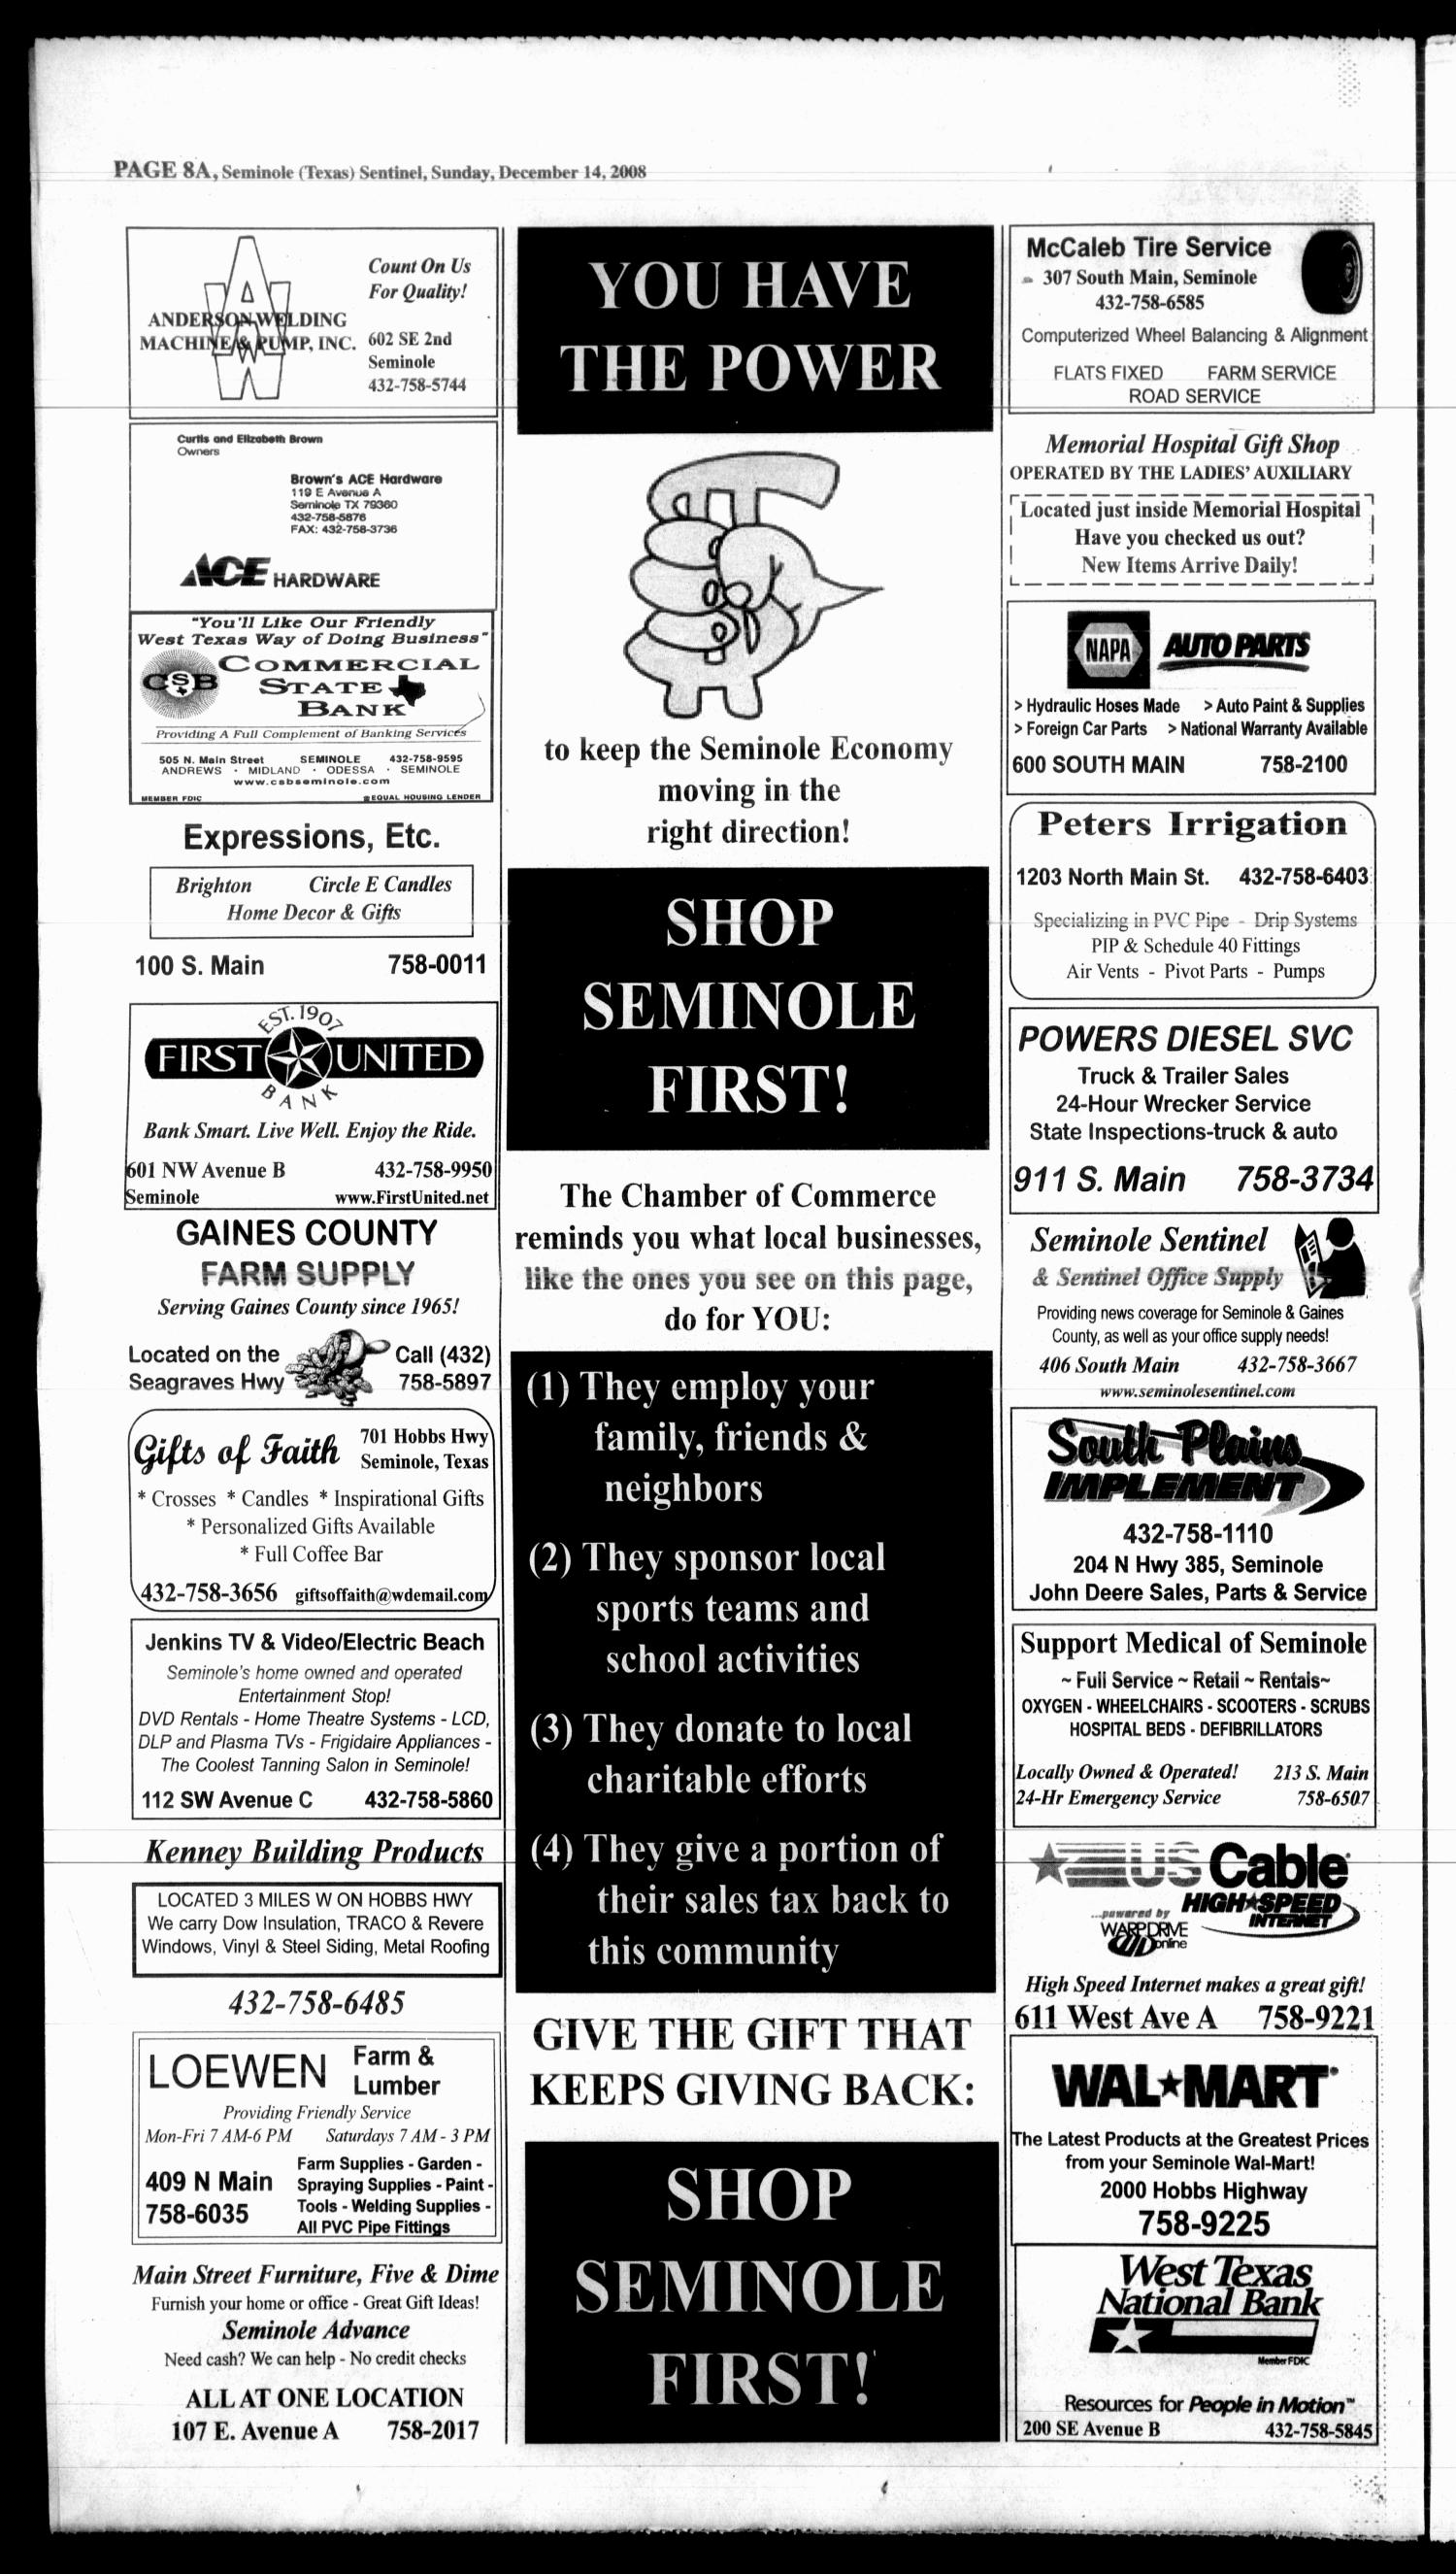 Seminole Sentinel (Seminole, Tex ), Vol  100, No  20, Ed  1